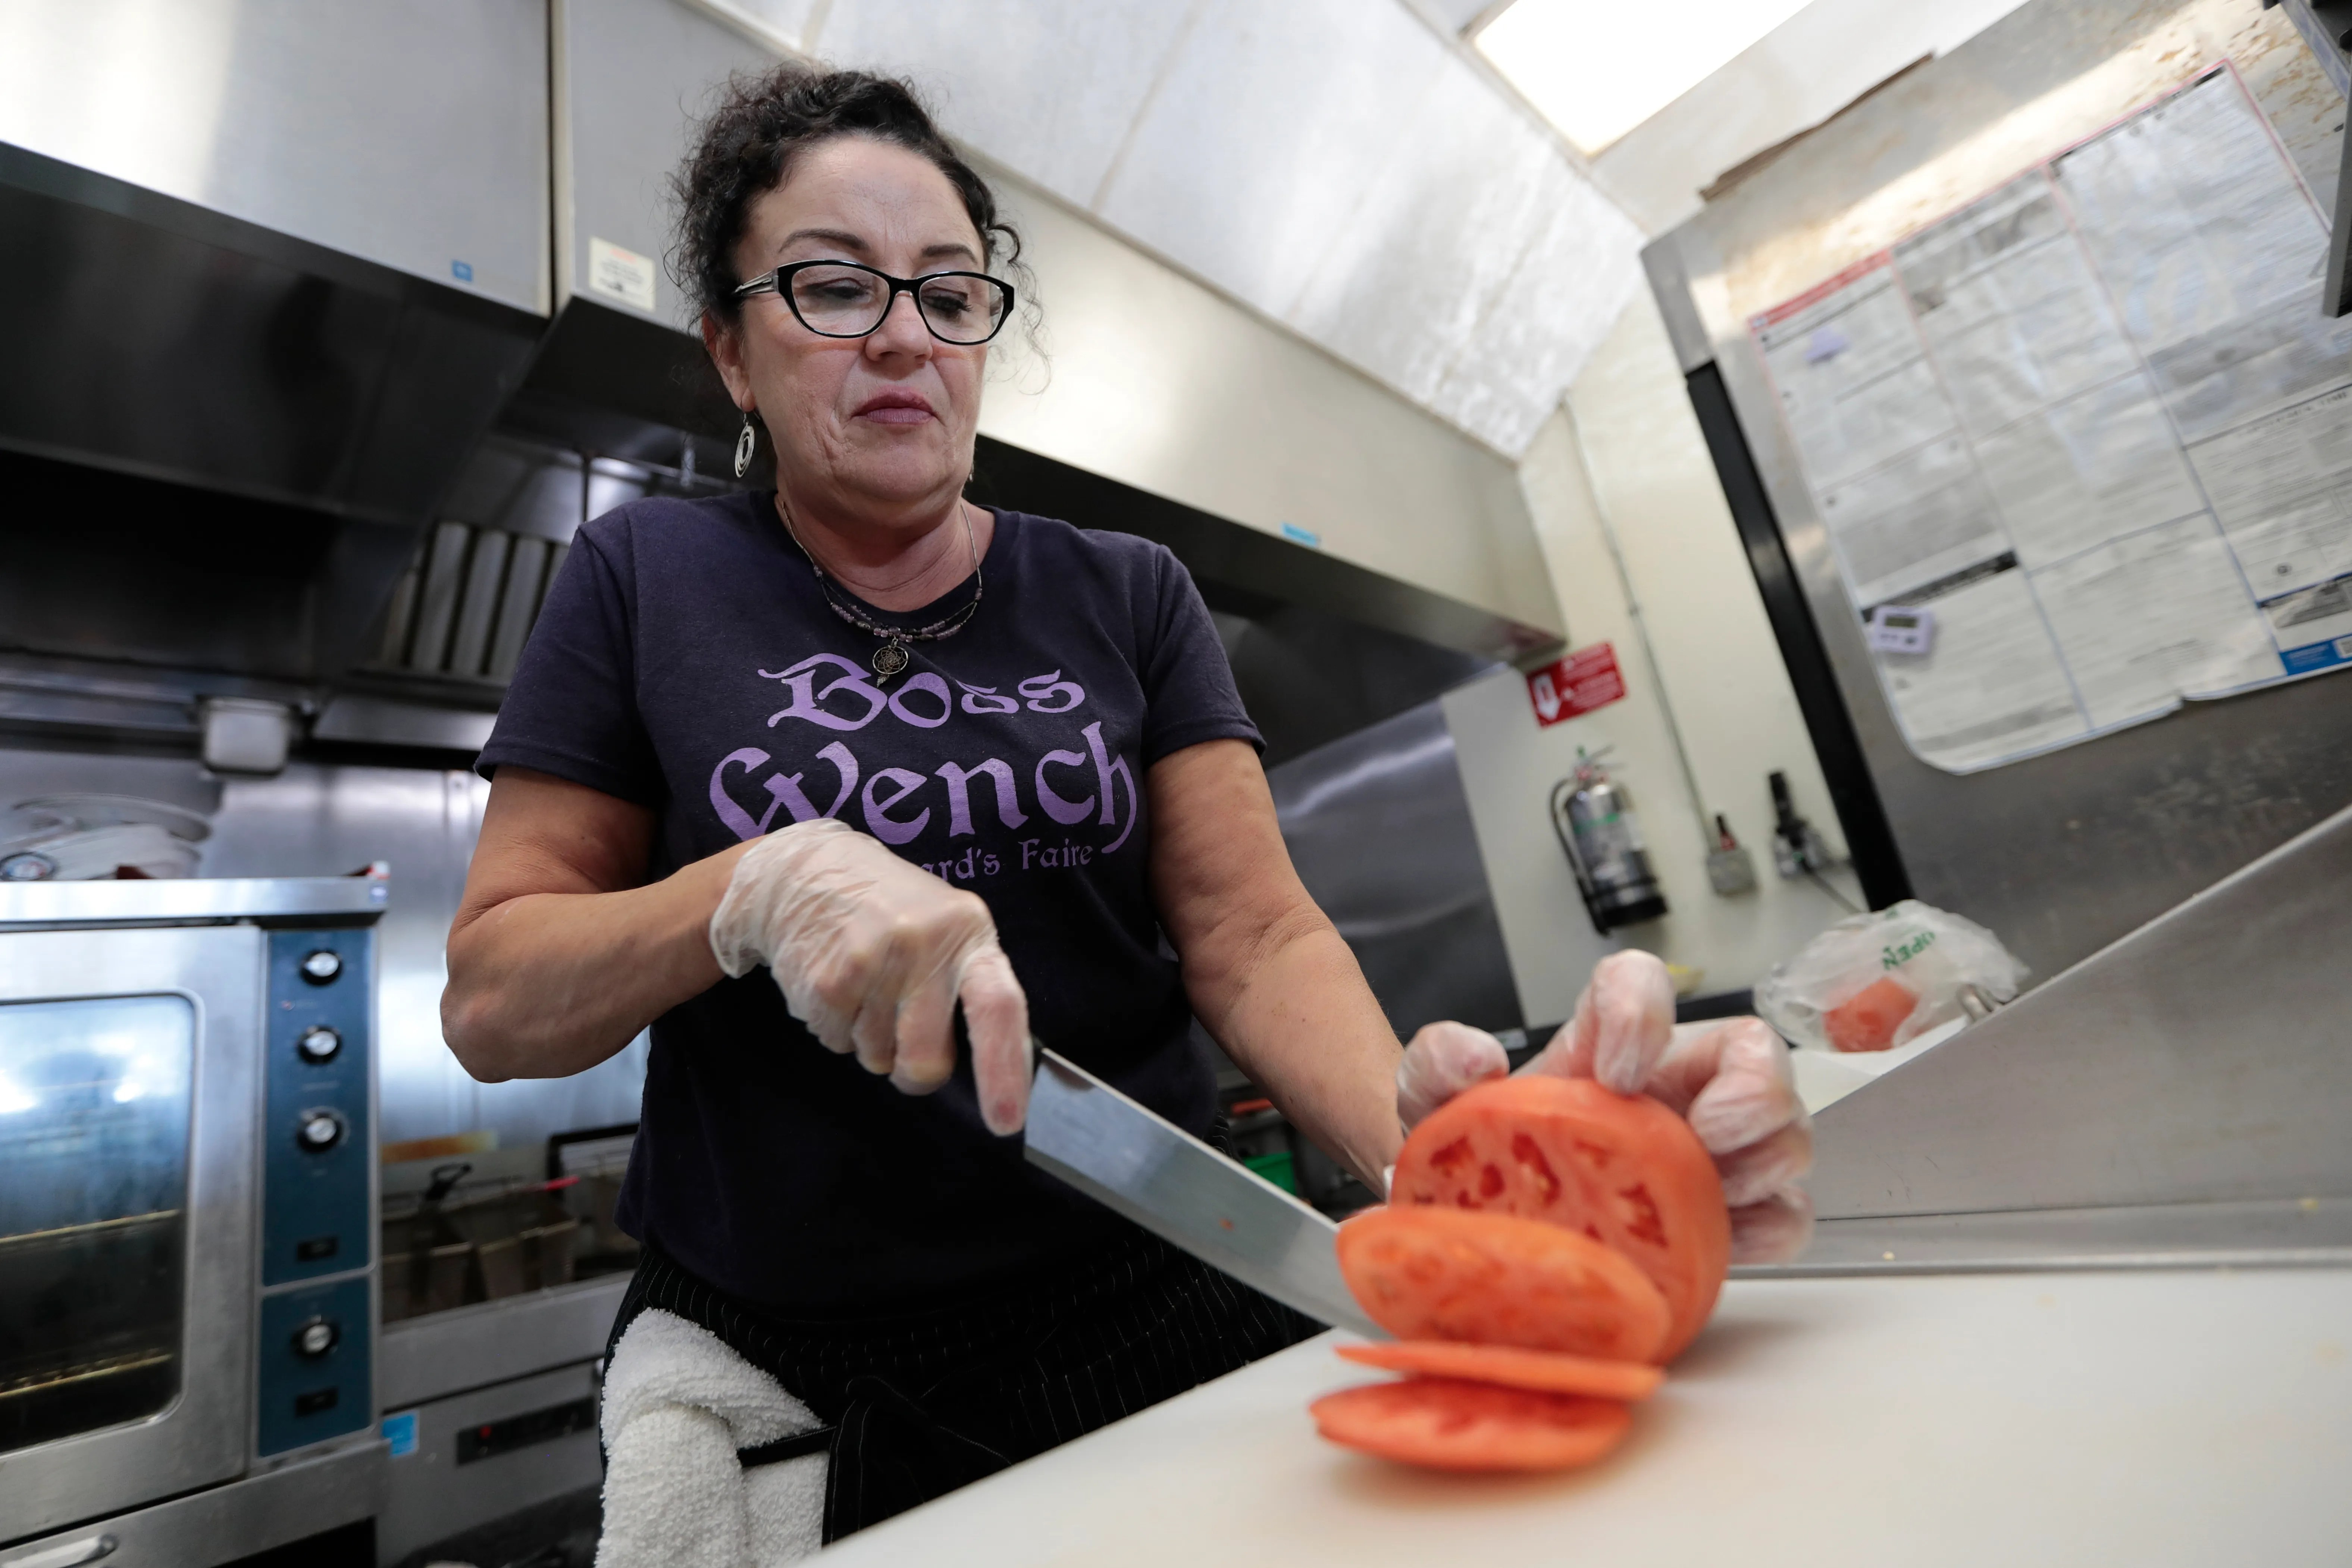 Deb DeSouza, owner, cuts a tomato for a breakfast sandwich at the Butternut Bistro on Acushnet Avenue in New Bedford.